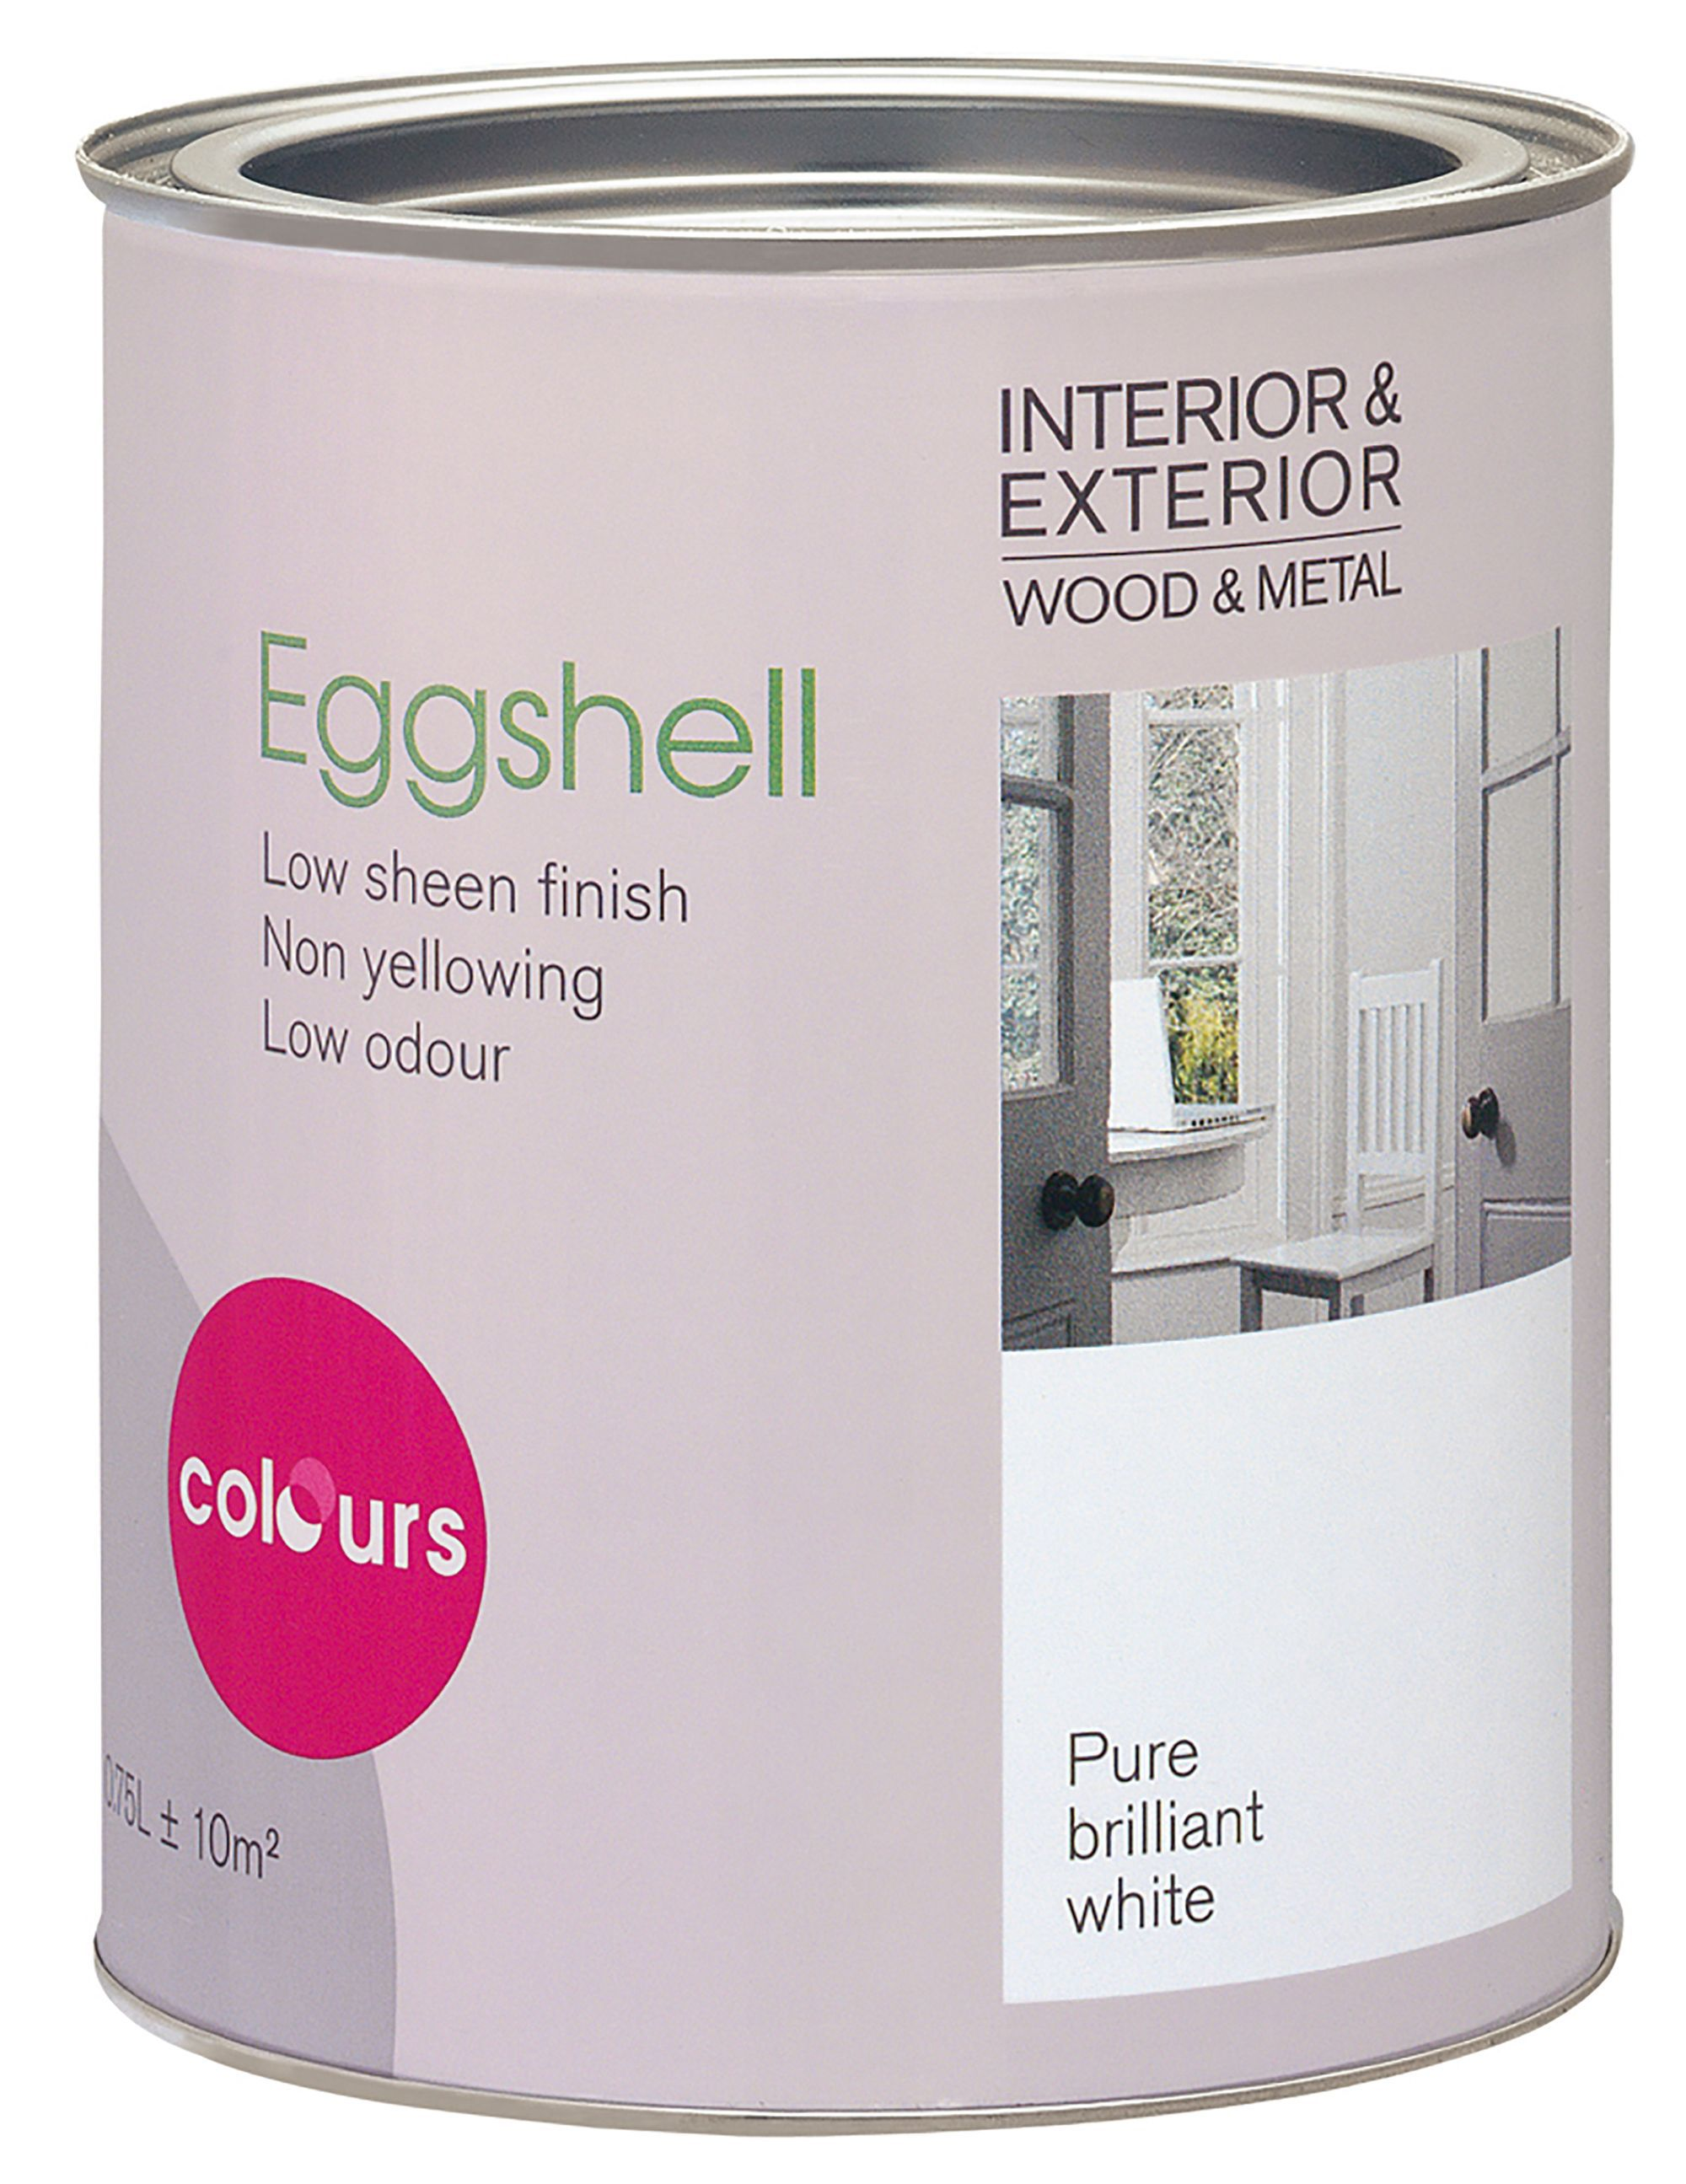 Eggshell Finish Wood Paint Diy